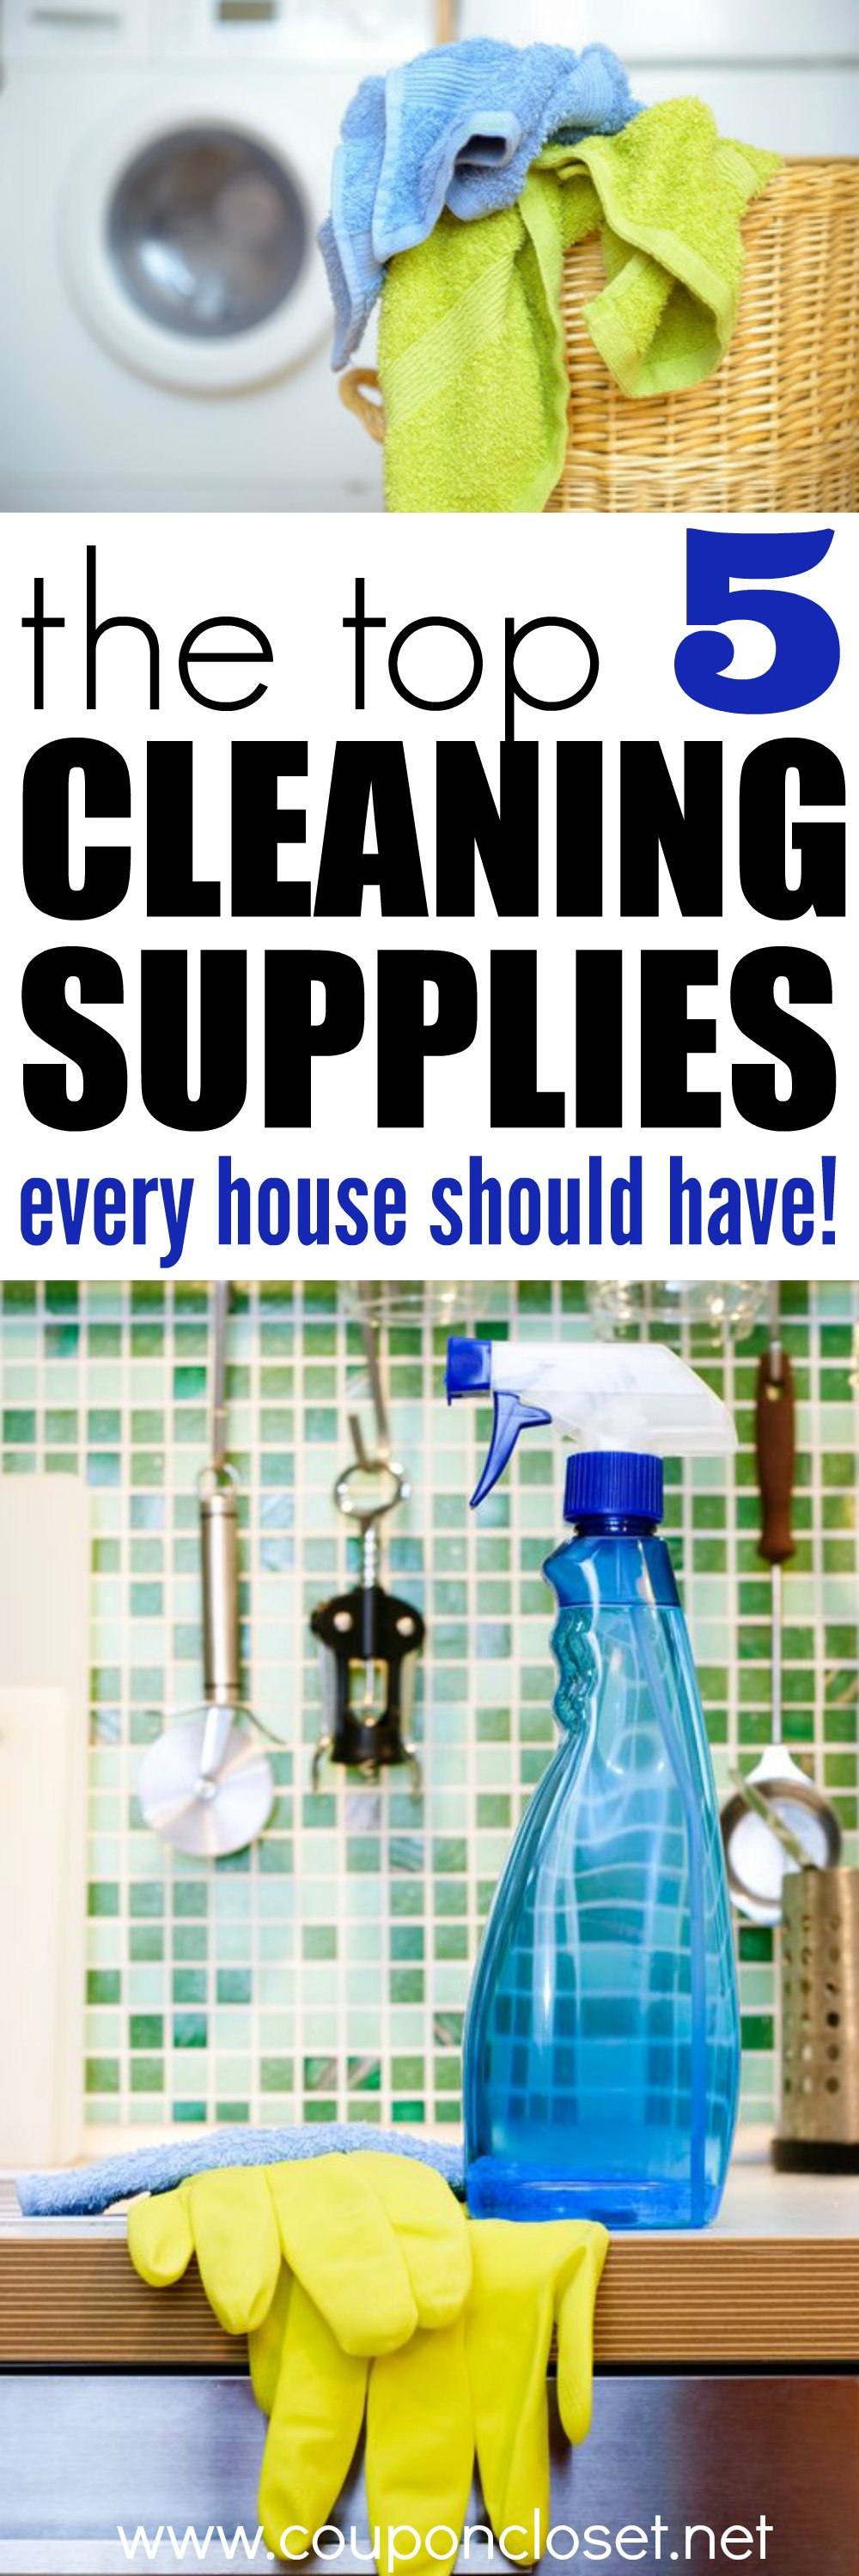 the best cleaning supplies that every house needs